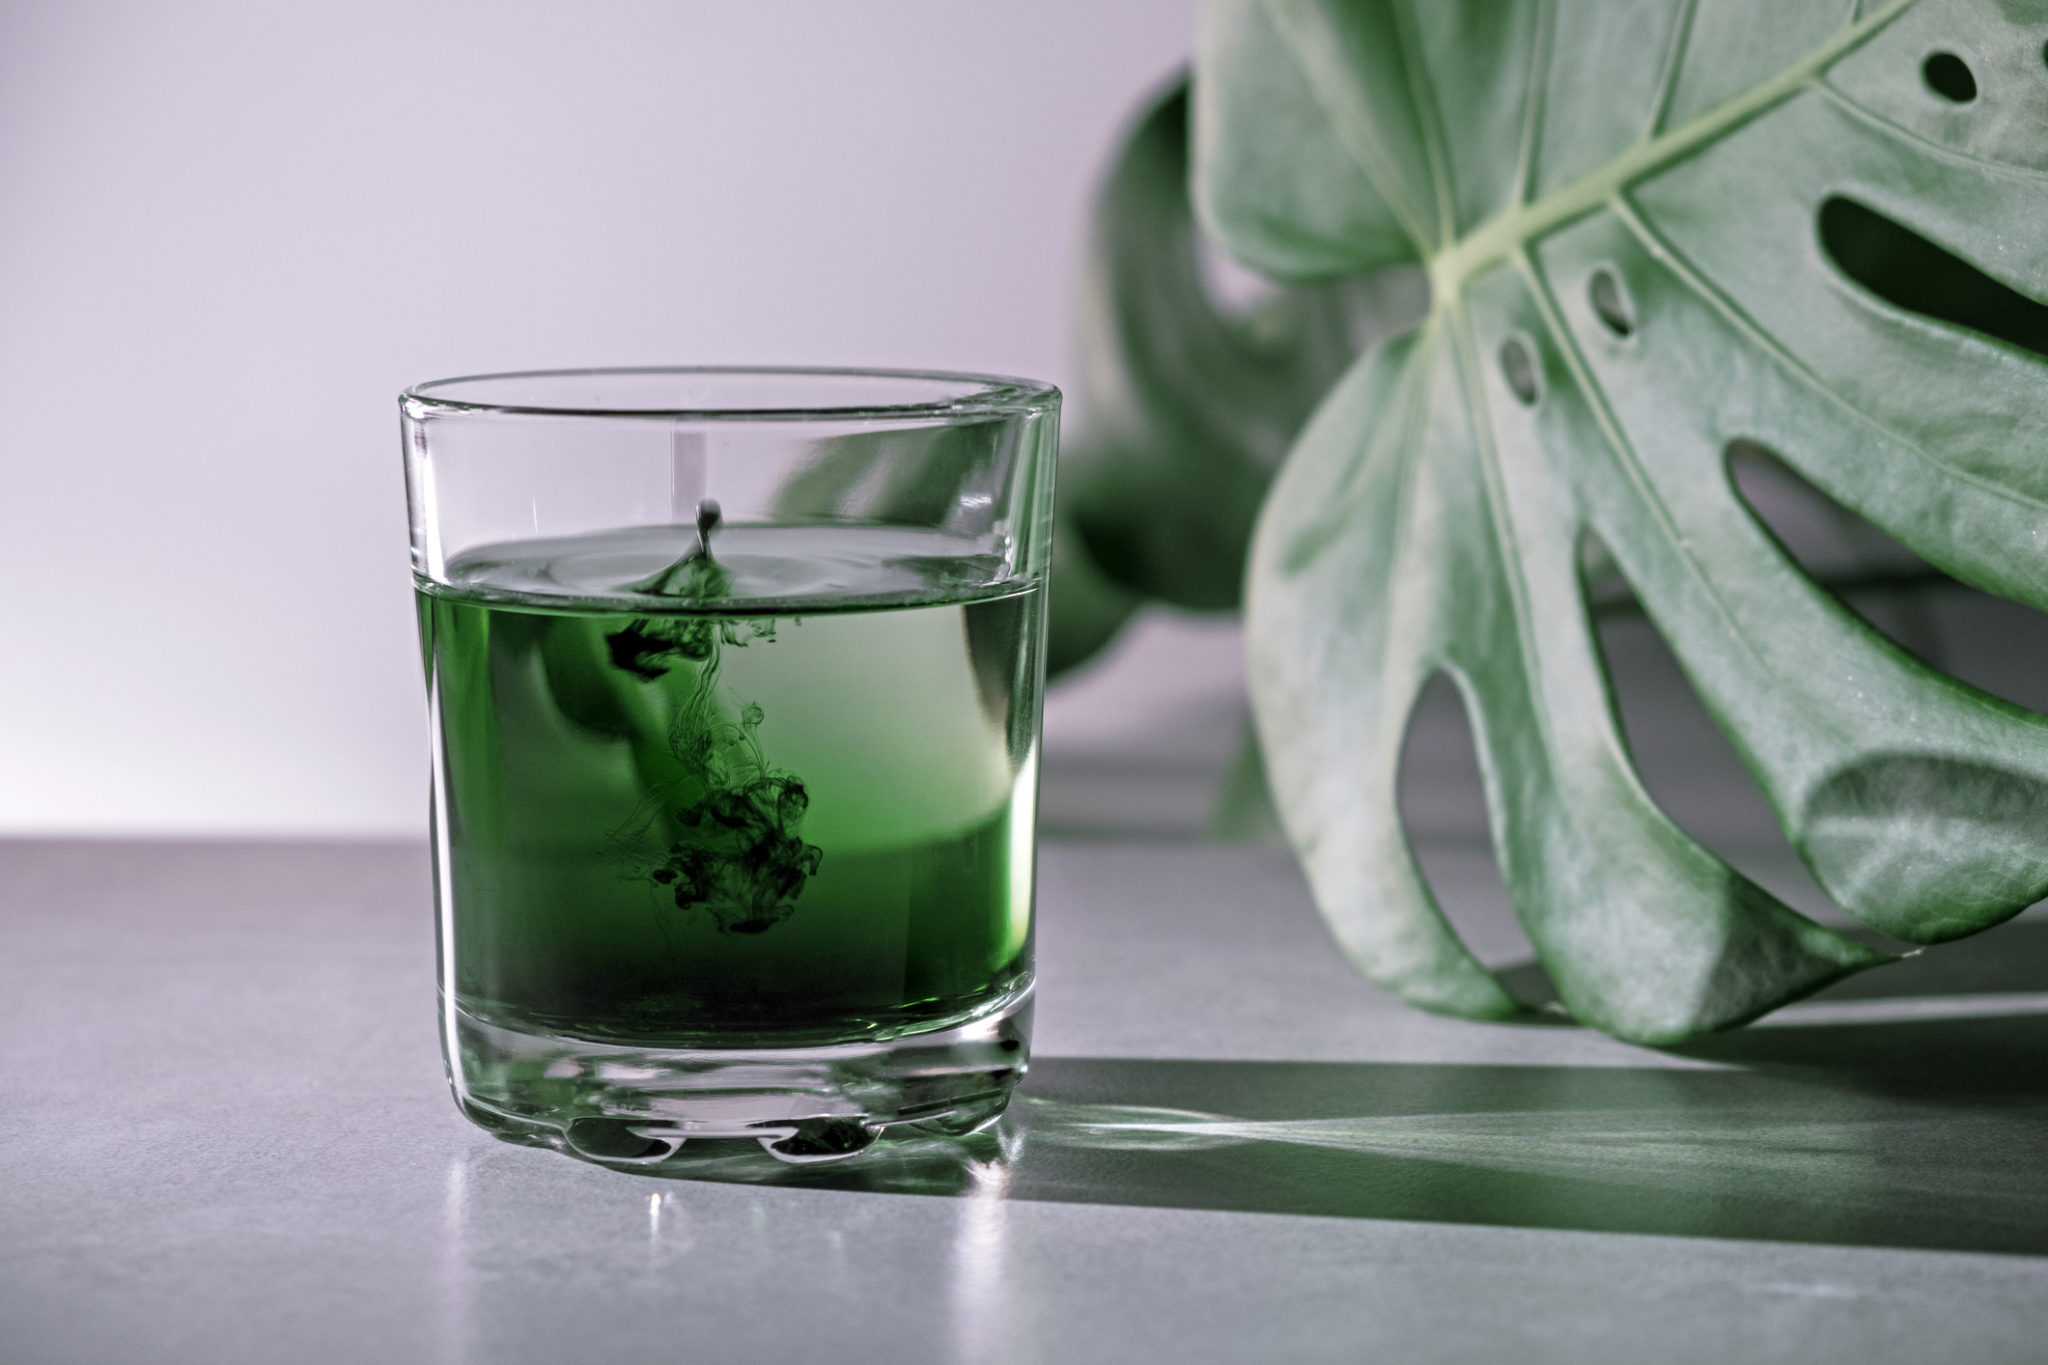 liquid chlorophyll dissolving in glass of water